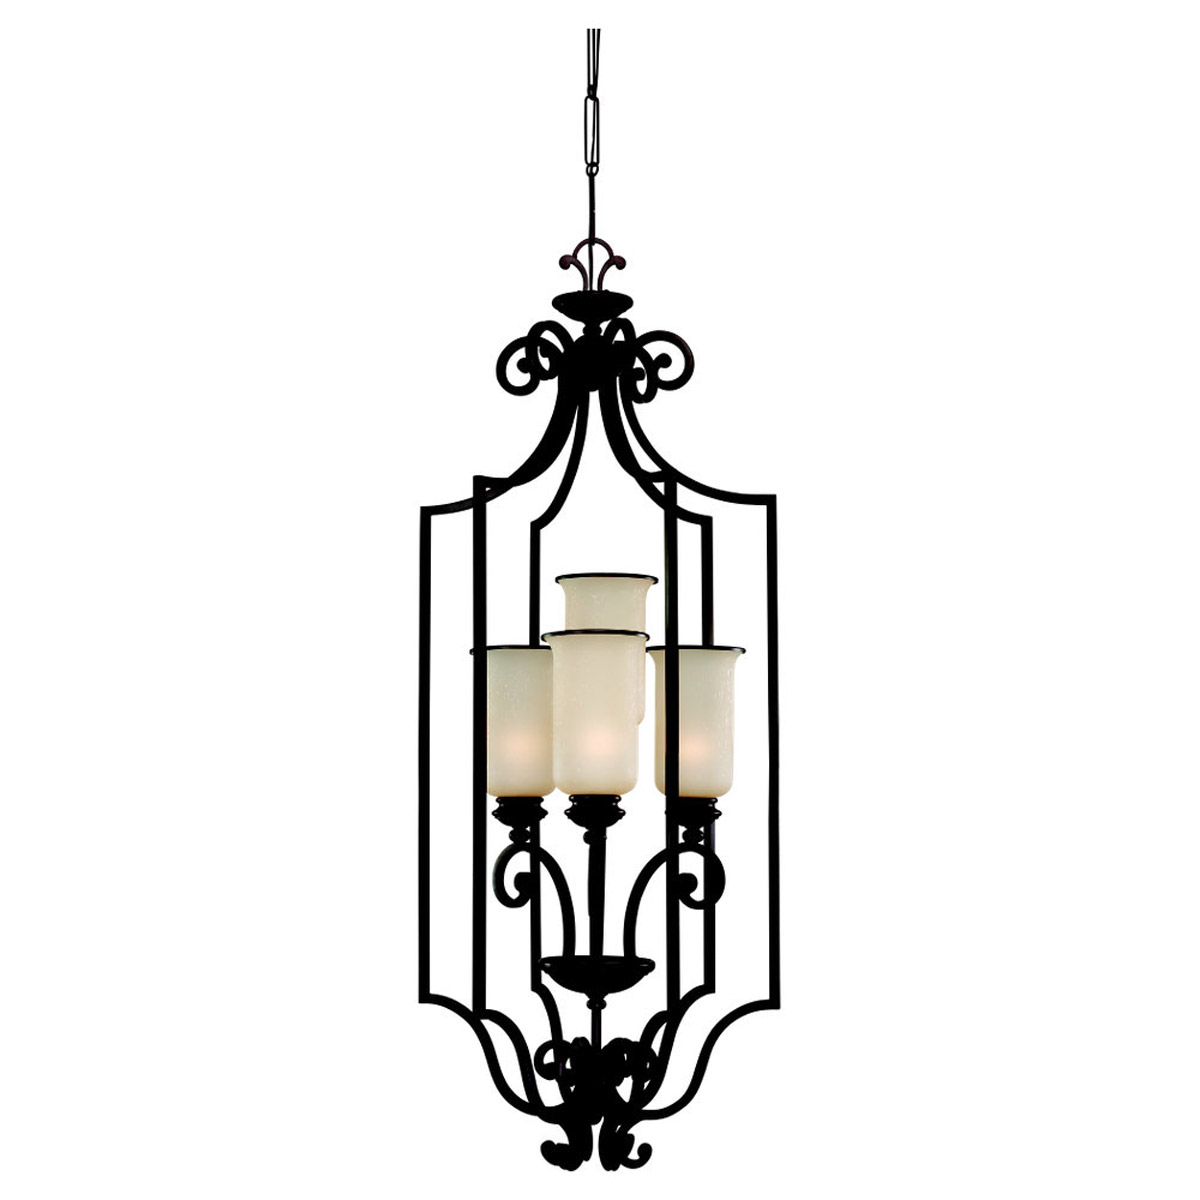 Sea Gull Lighting Acadia 4 Light Foyer Pendant in Misted Bronze 51146-814